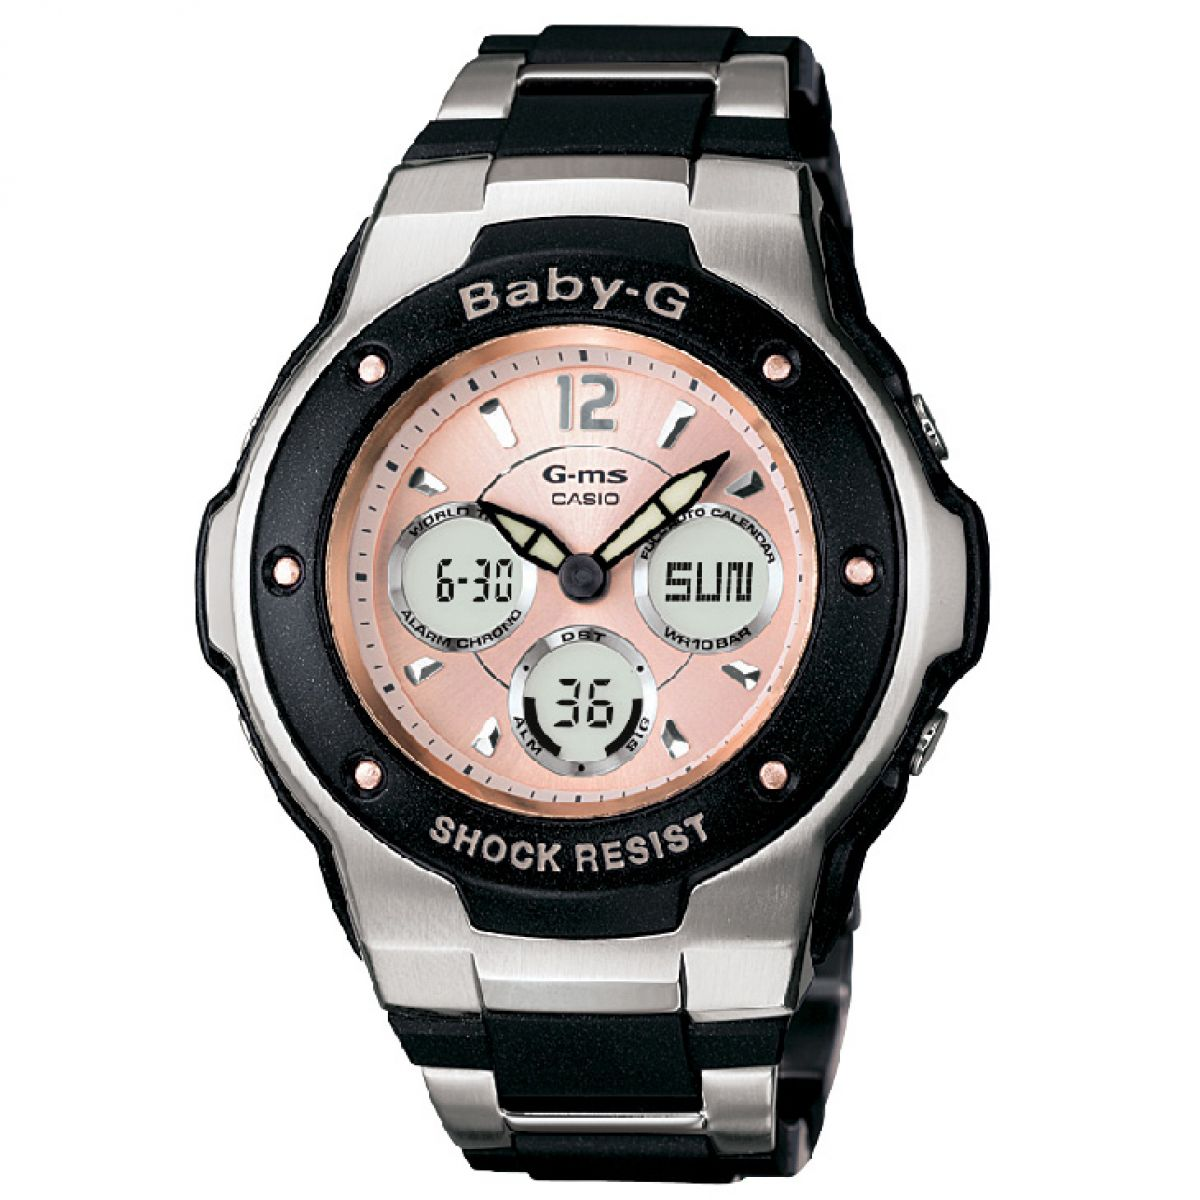 ladies casio baby g alarm chronograph watch msg 300c 1ber rh watchshop com Baby G -Shock Watch Manual Baby G- Shock Watches for Boys